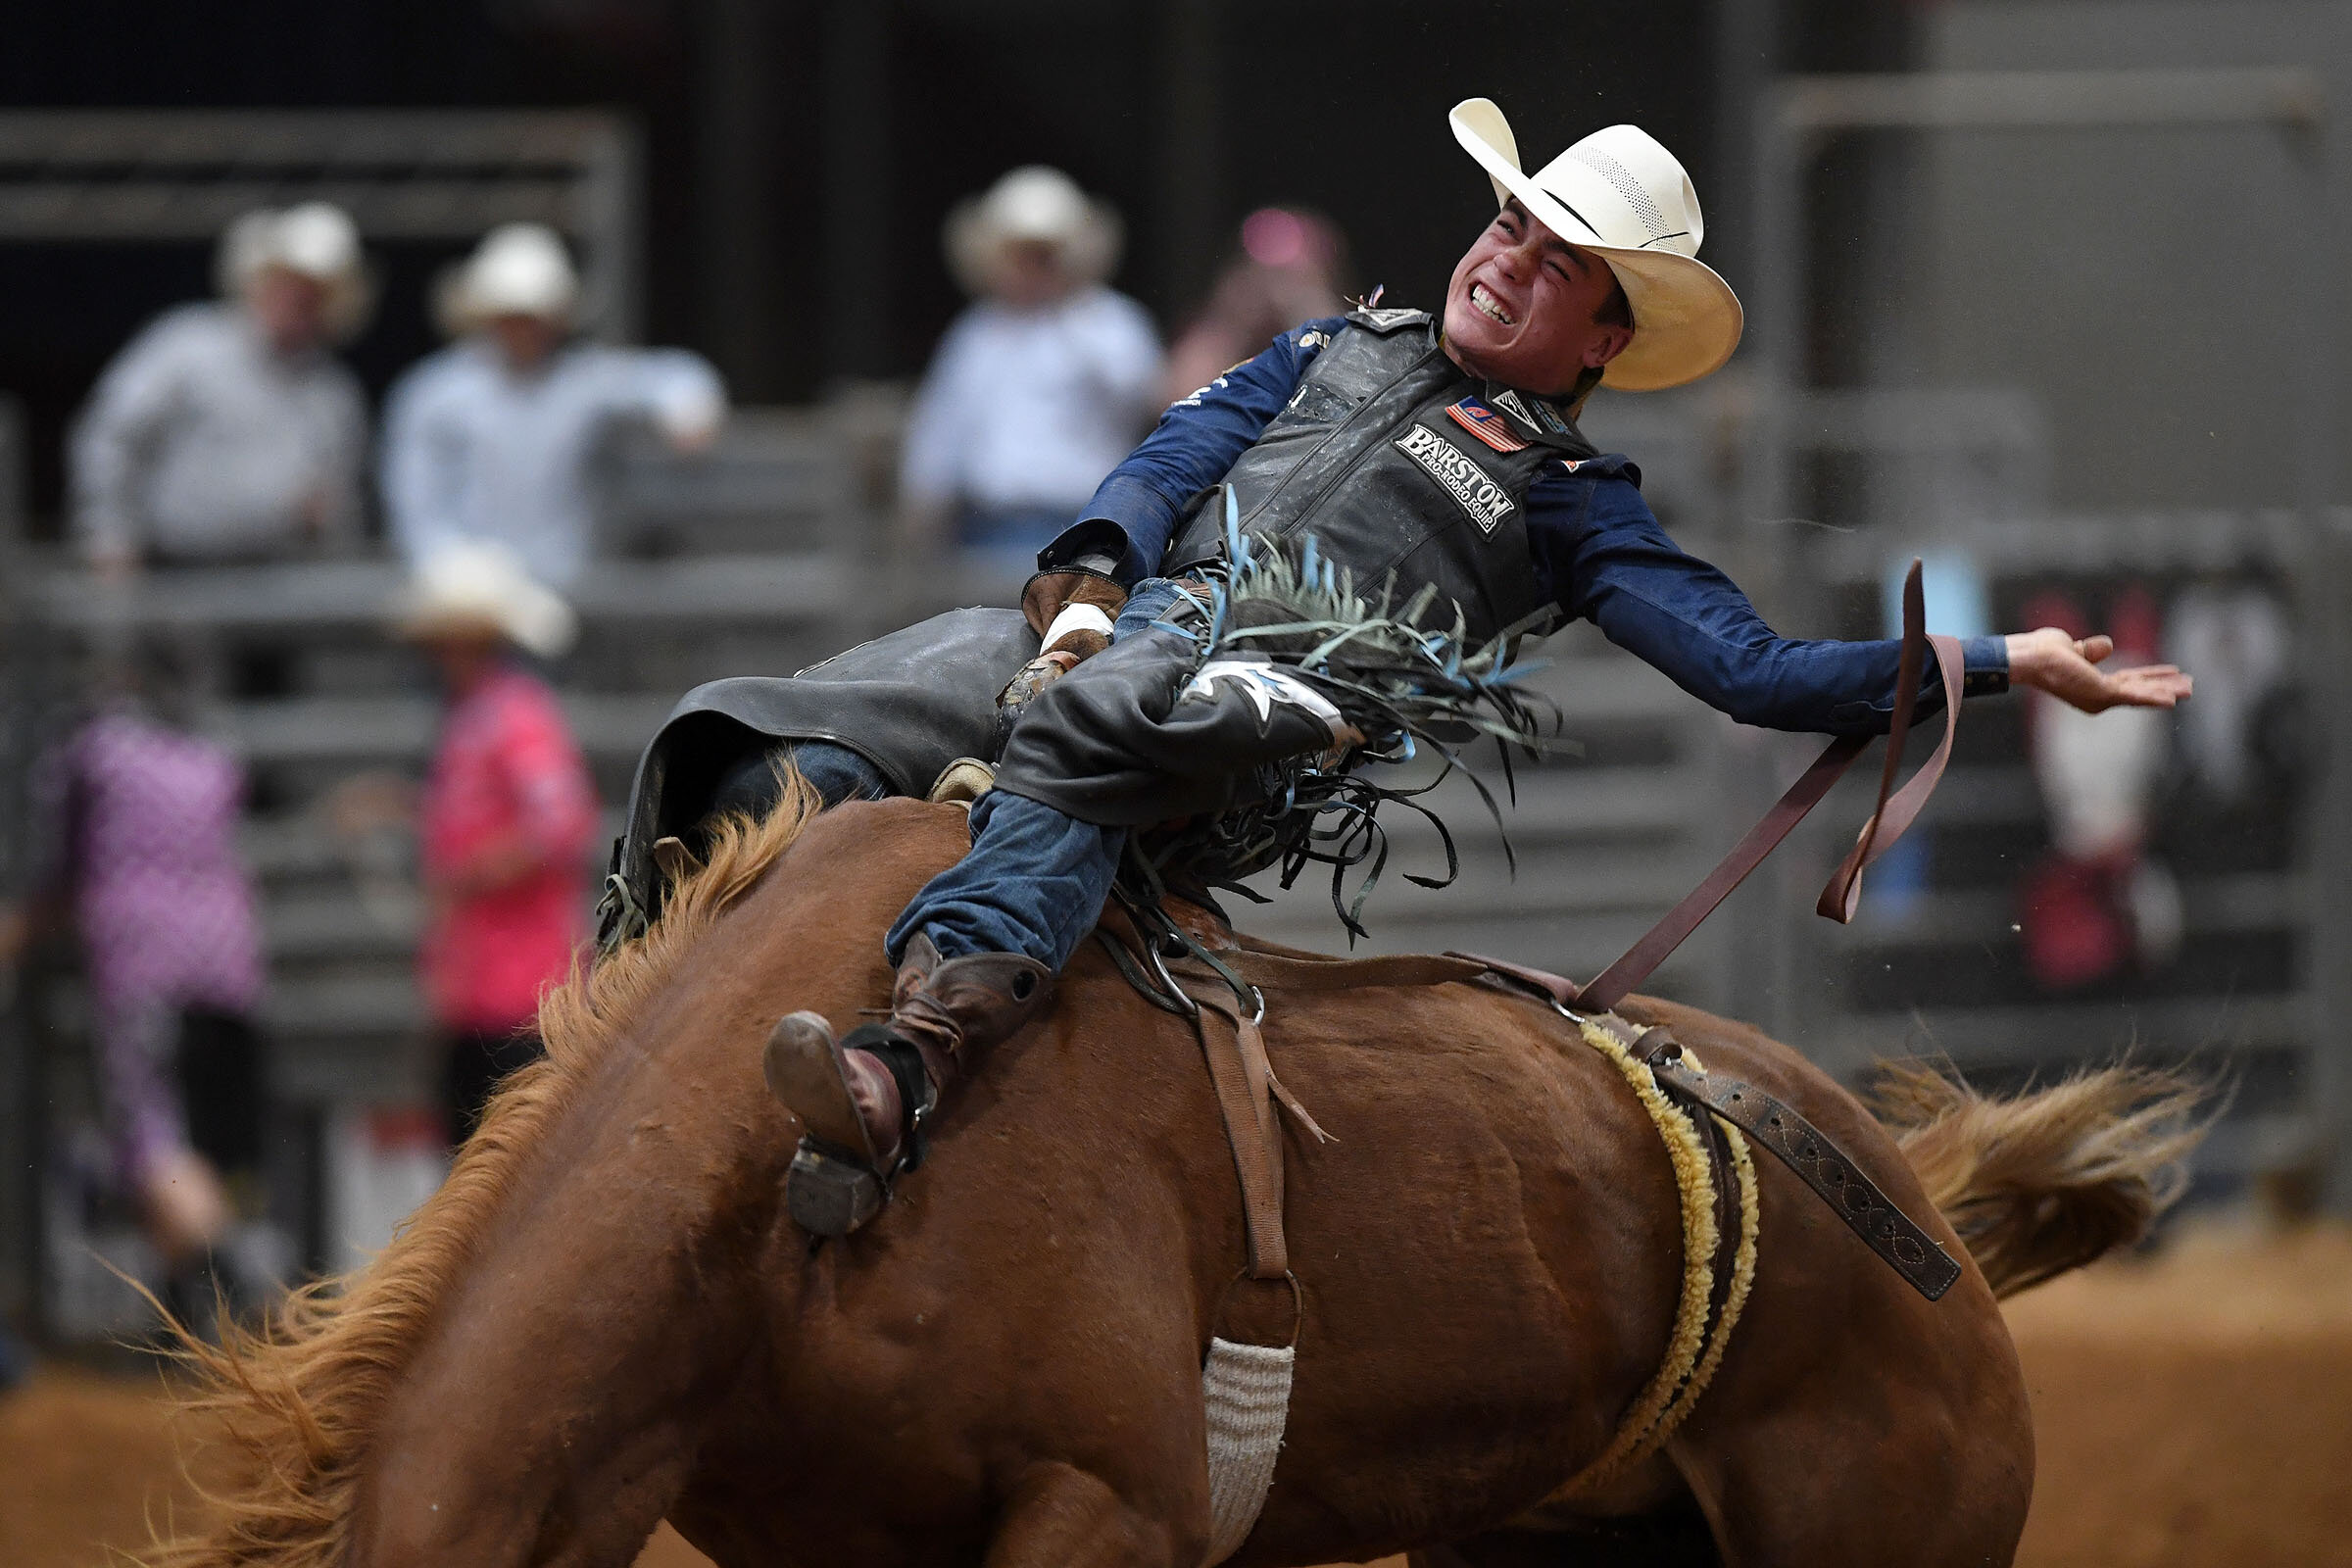 Bradlee Miller competes in the bareback riding event during the Brazos Valley Fair and Rodeo Saturday, Oct. 19, 2019, at the Brazos County Expo in Bryan, Texas. (Laura McKenzie/The Eagle)